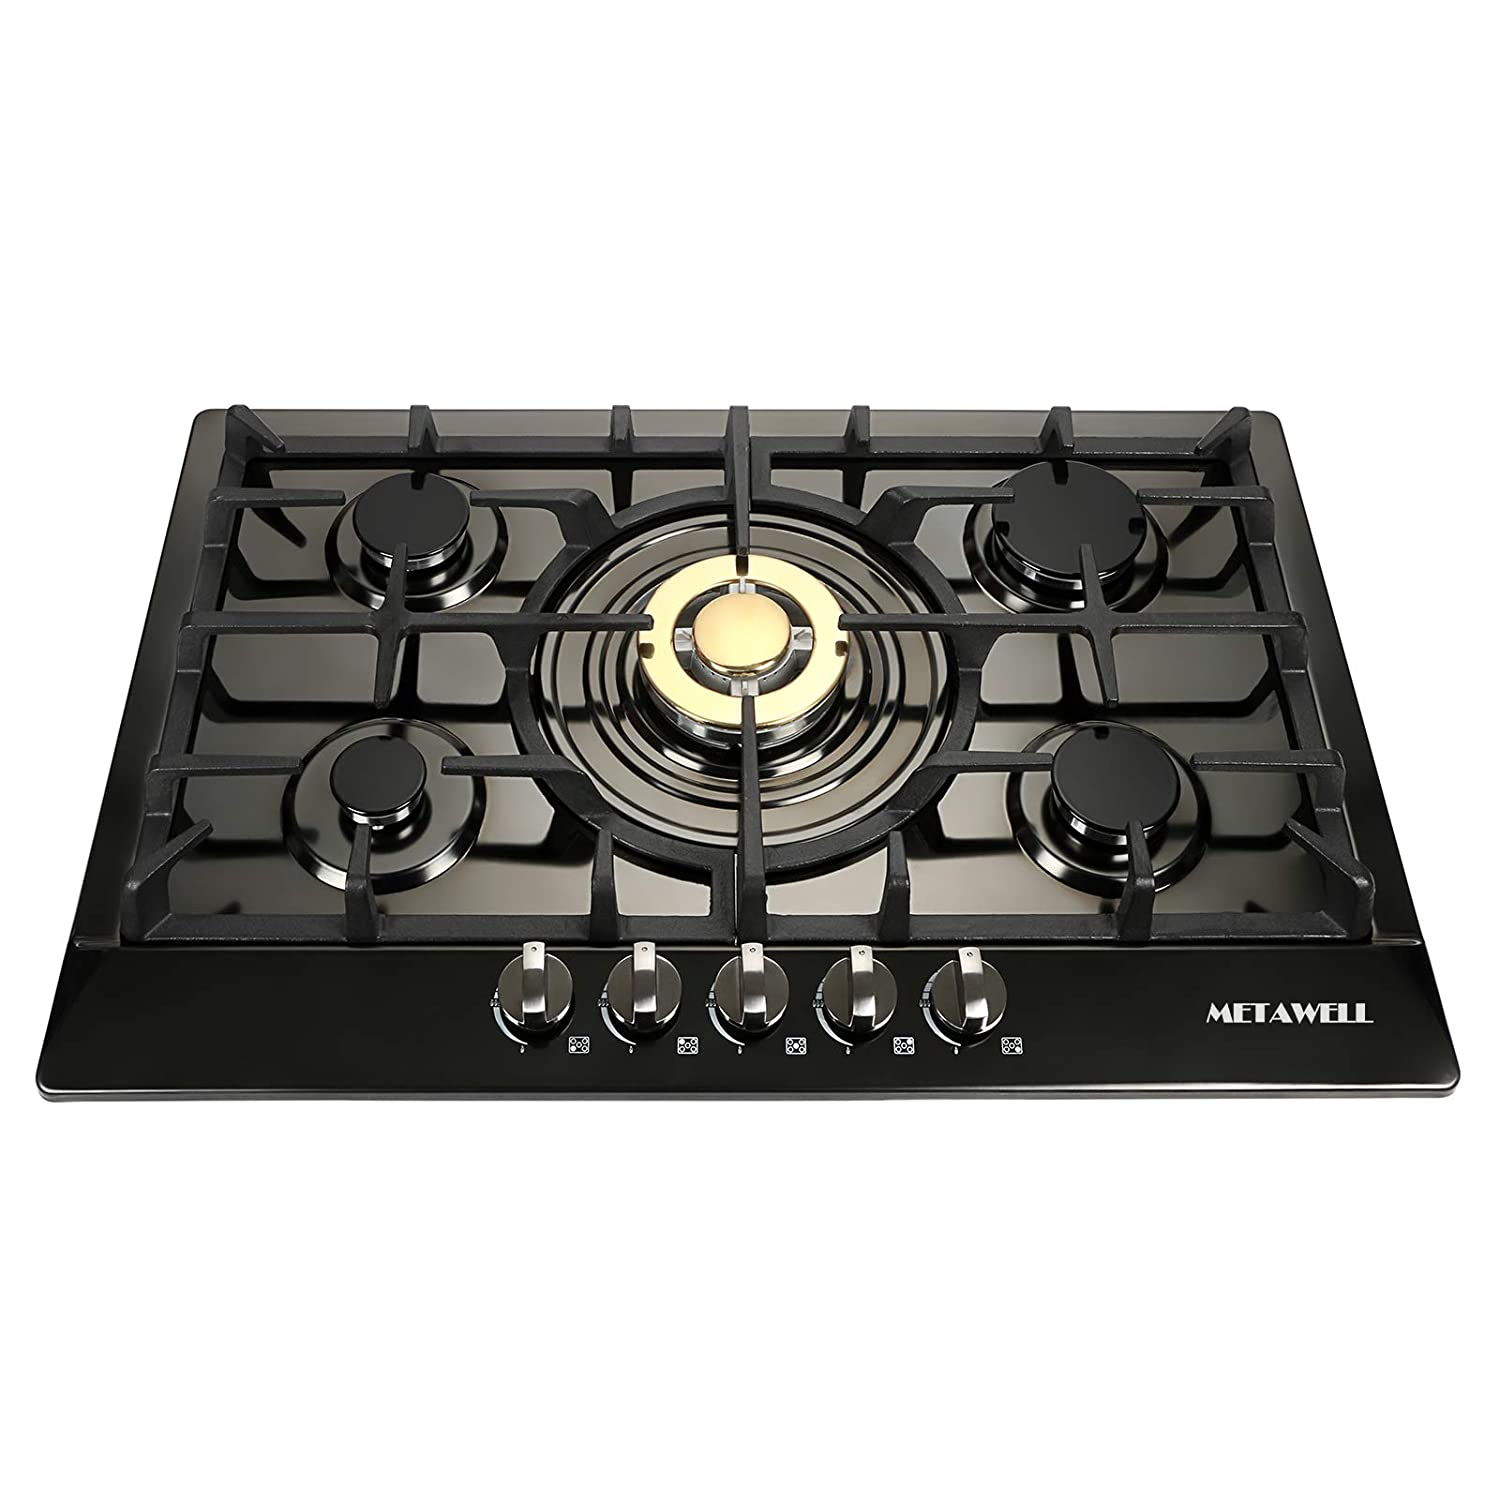 METAWELL 30 Black Titanium Plated Stainless Steel 5 Burner Built-in Stoves NG Gas Hob Cooktops Cooker